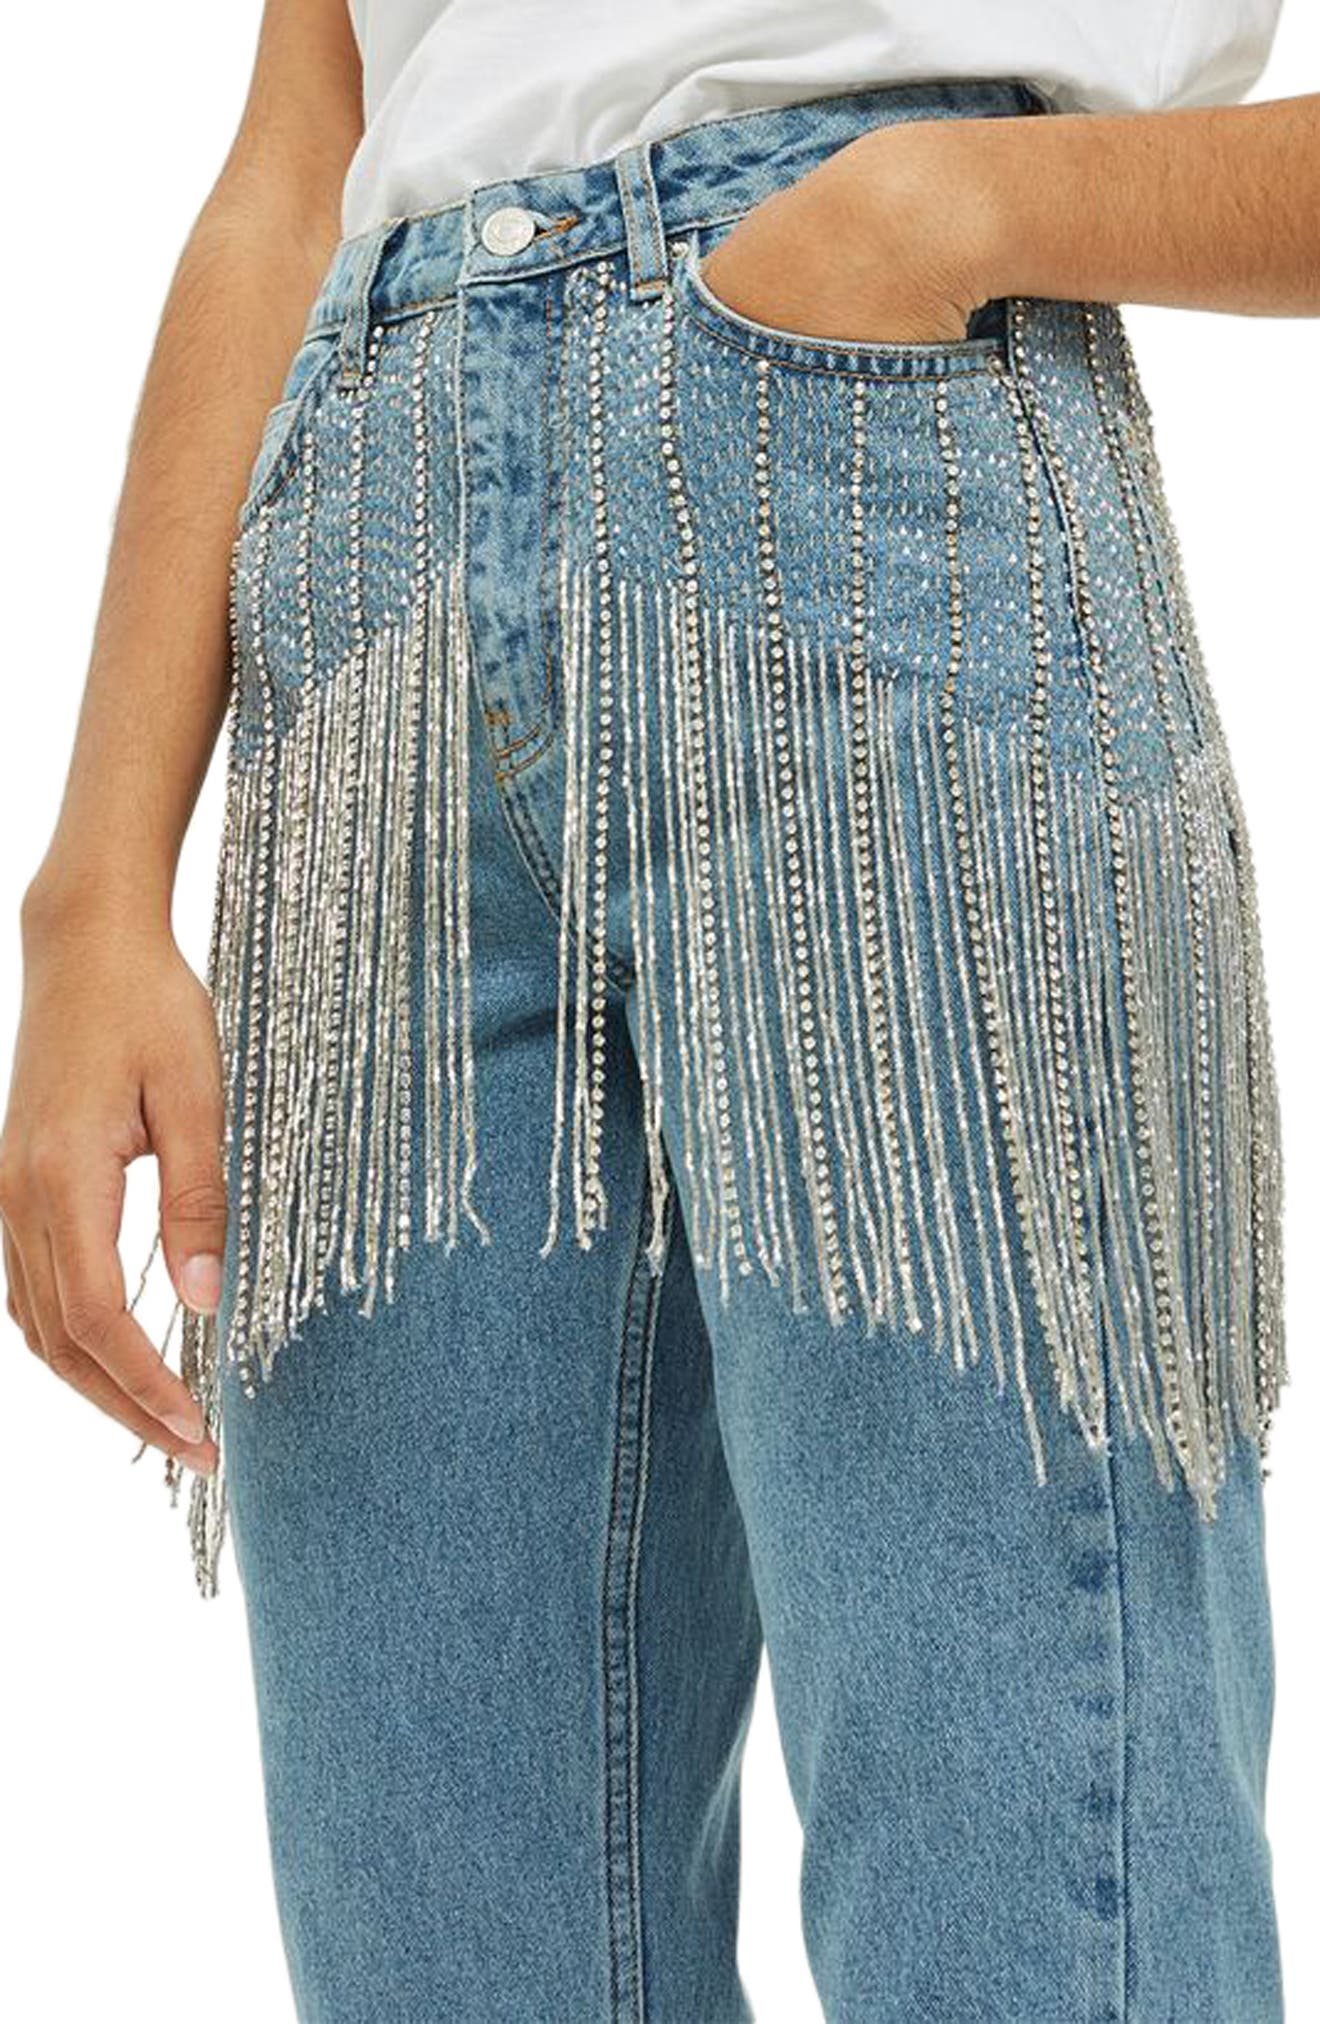 Diamante Crystal Fringe Mom Jeans,                             Alternate thumbnail 4, color,